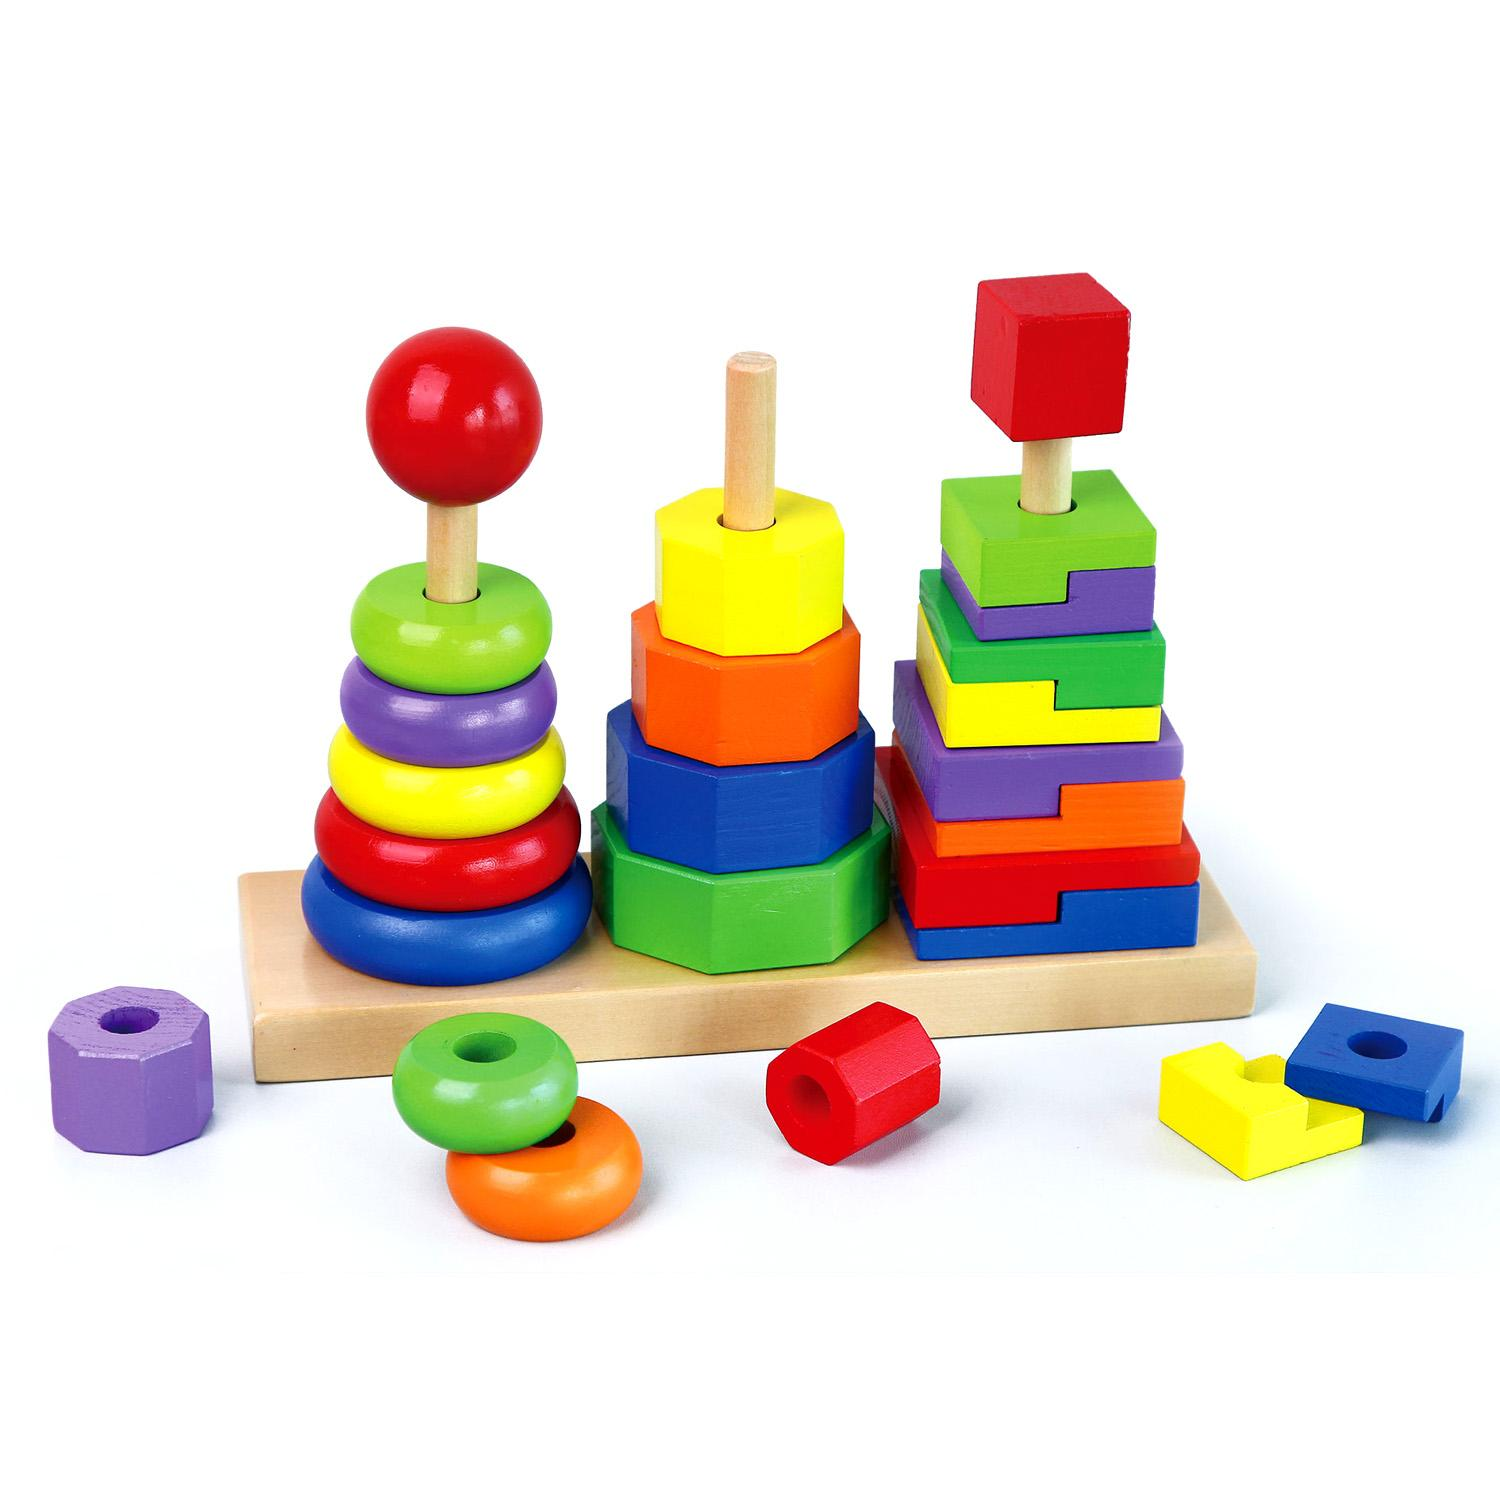 Toys For Preschoolers : Geometric stacker childrens wooden educational stacking